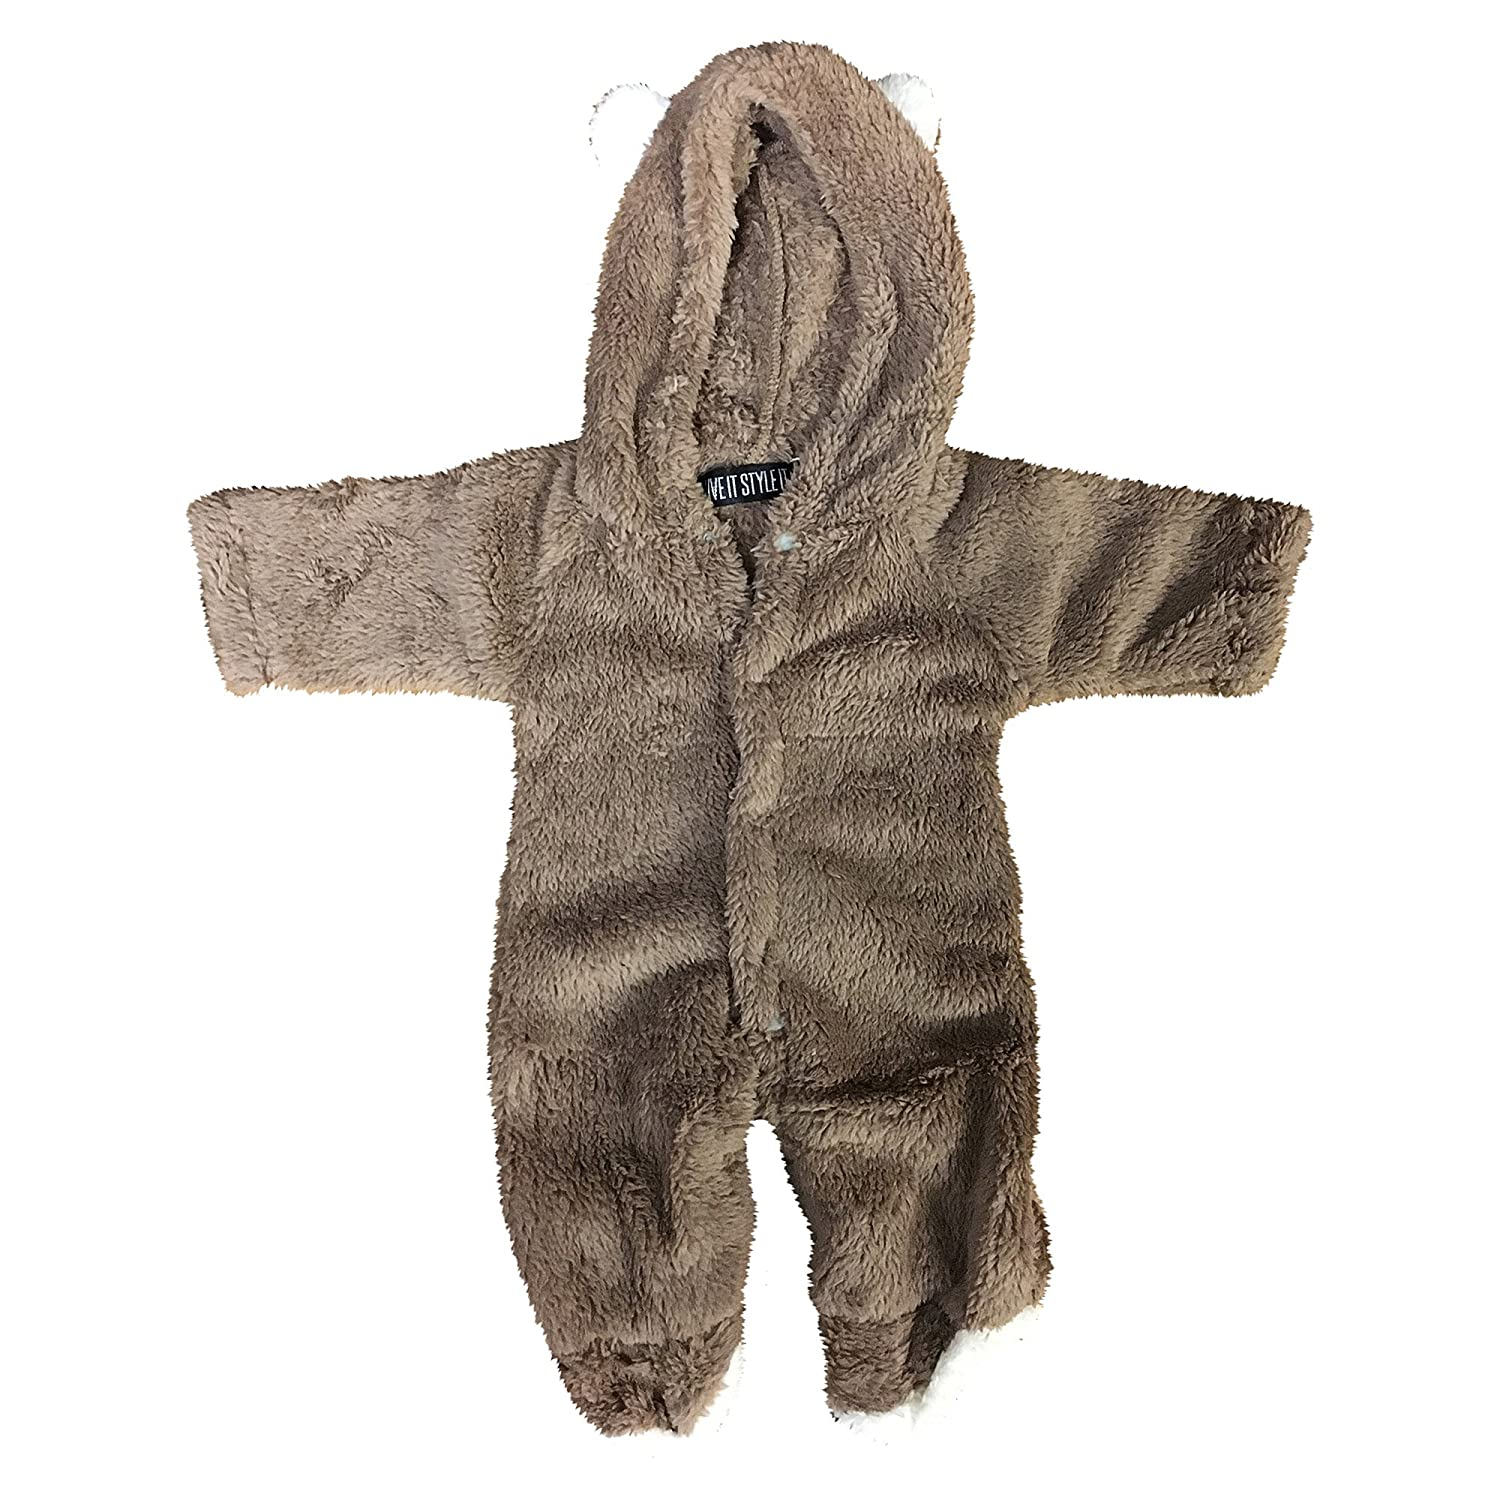 Baby Grow Newborn Infant Romper Hooded Bear Jumpsuit Boys Girls Animal 0-12 Months Winter Soft Cute Playsuit All In One